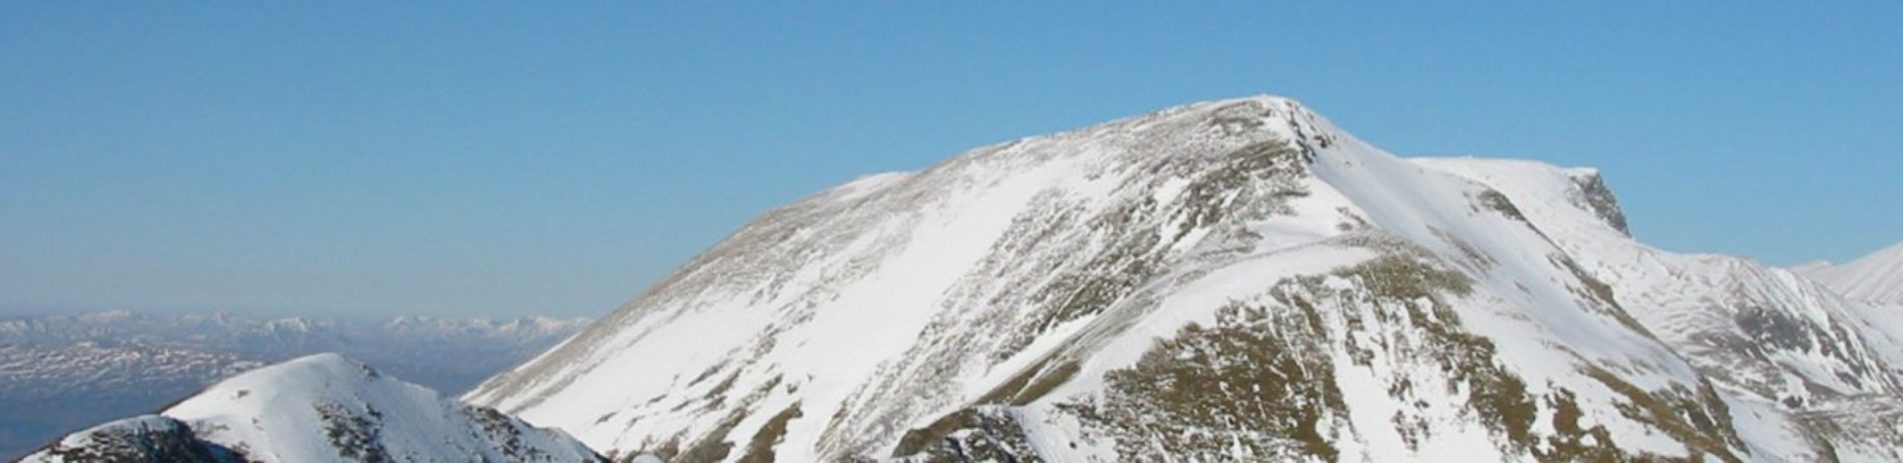 ben-ime-and-ben-narmaim-summits-in-the-snow